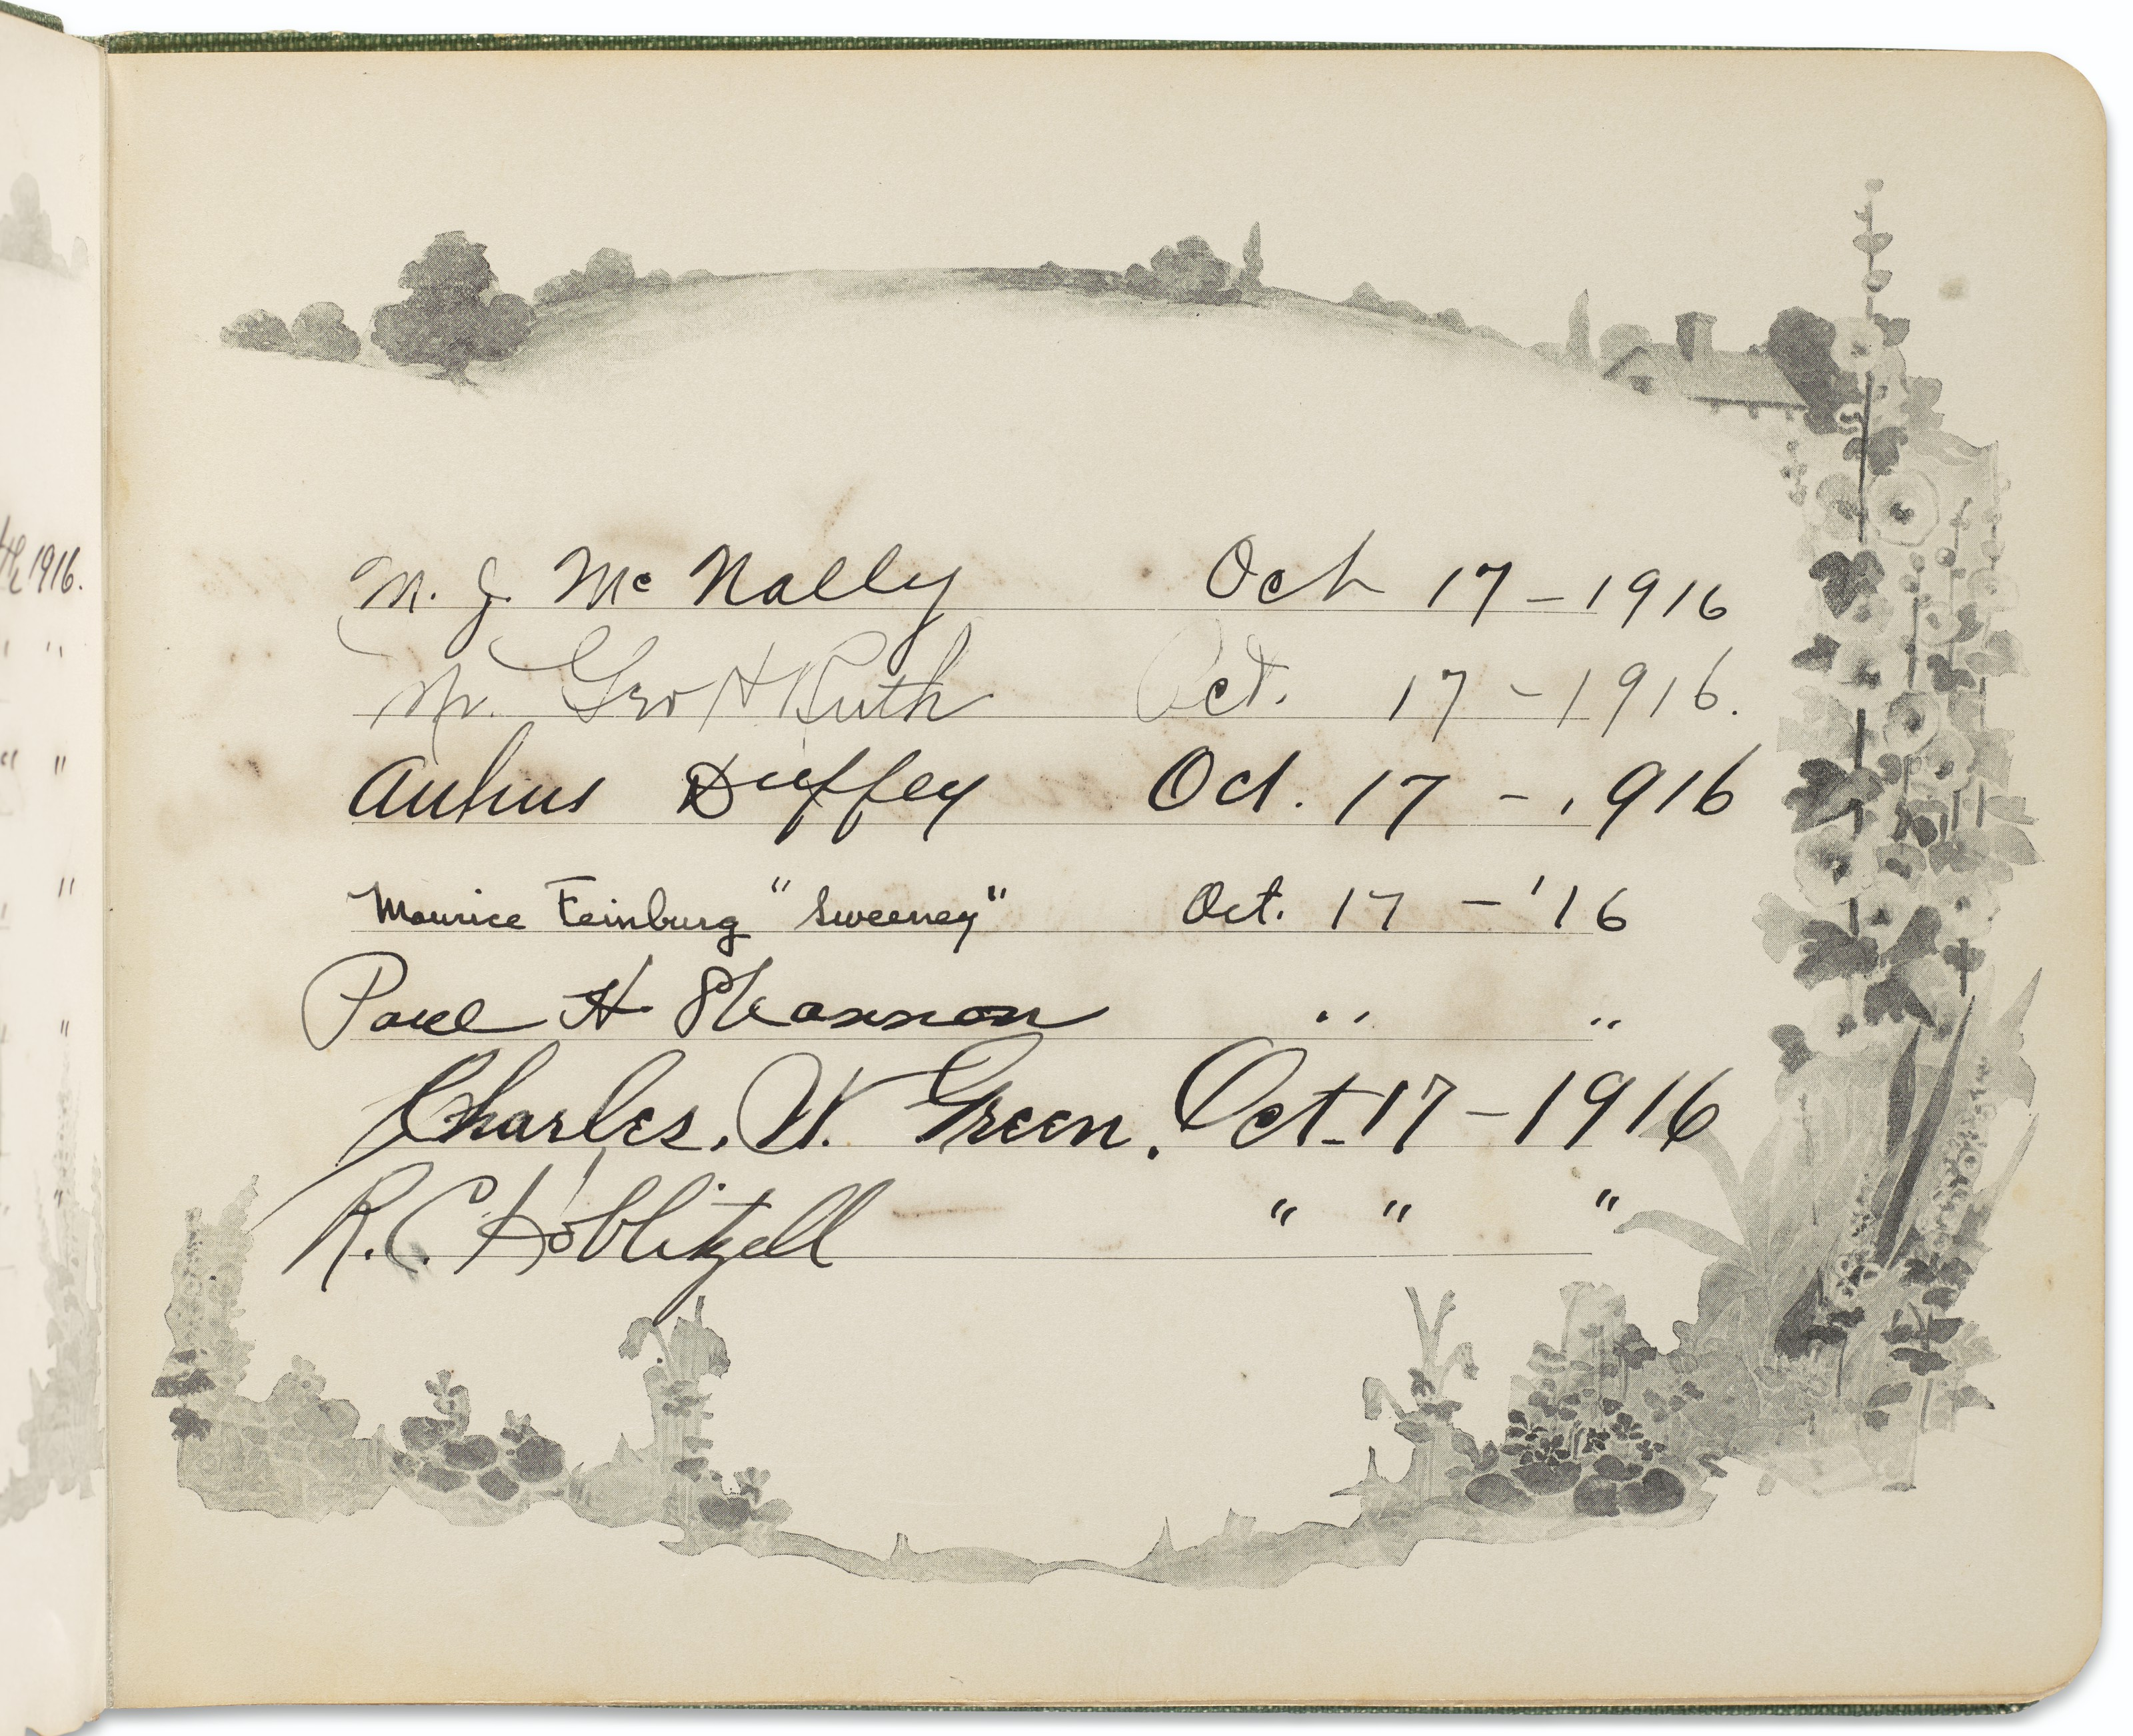 Significant Edward Maynard Boston Red Sox Photographic Archive and Autographed Guest Register c.1915-16 (Ex-Draper & Maynard Collection)